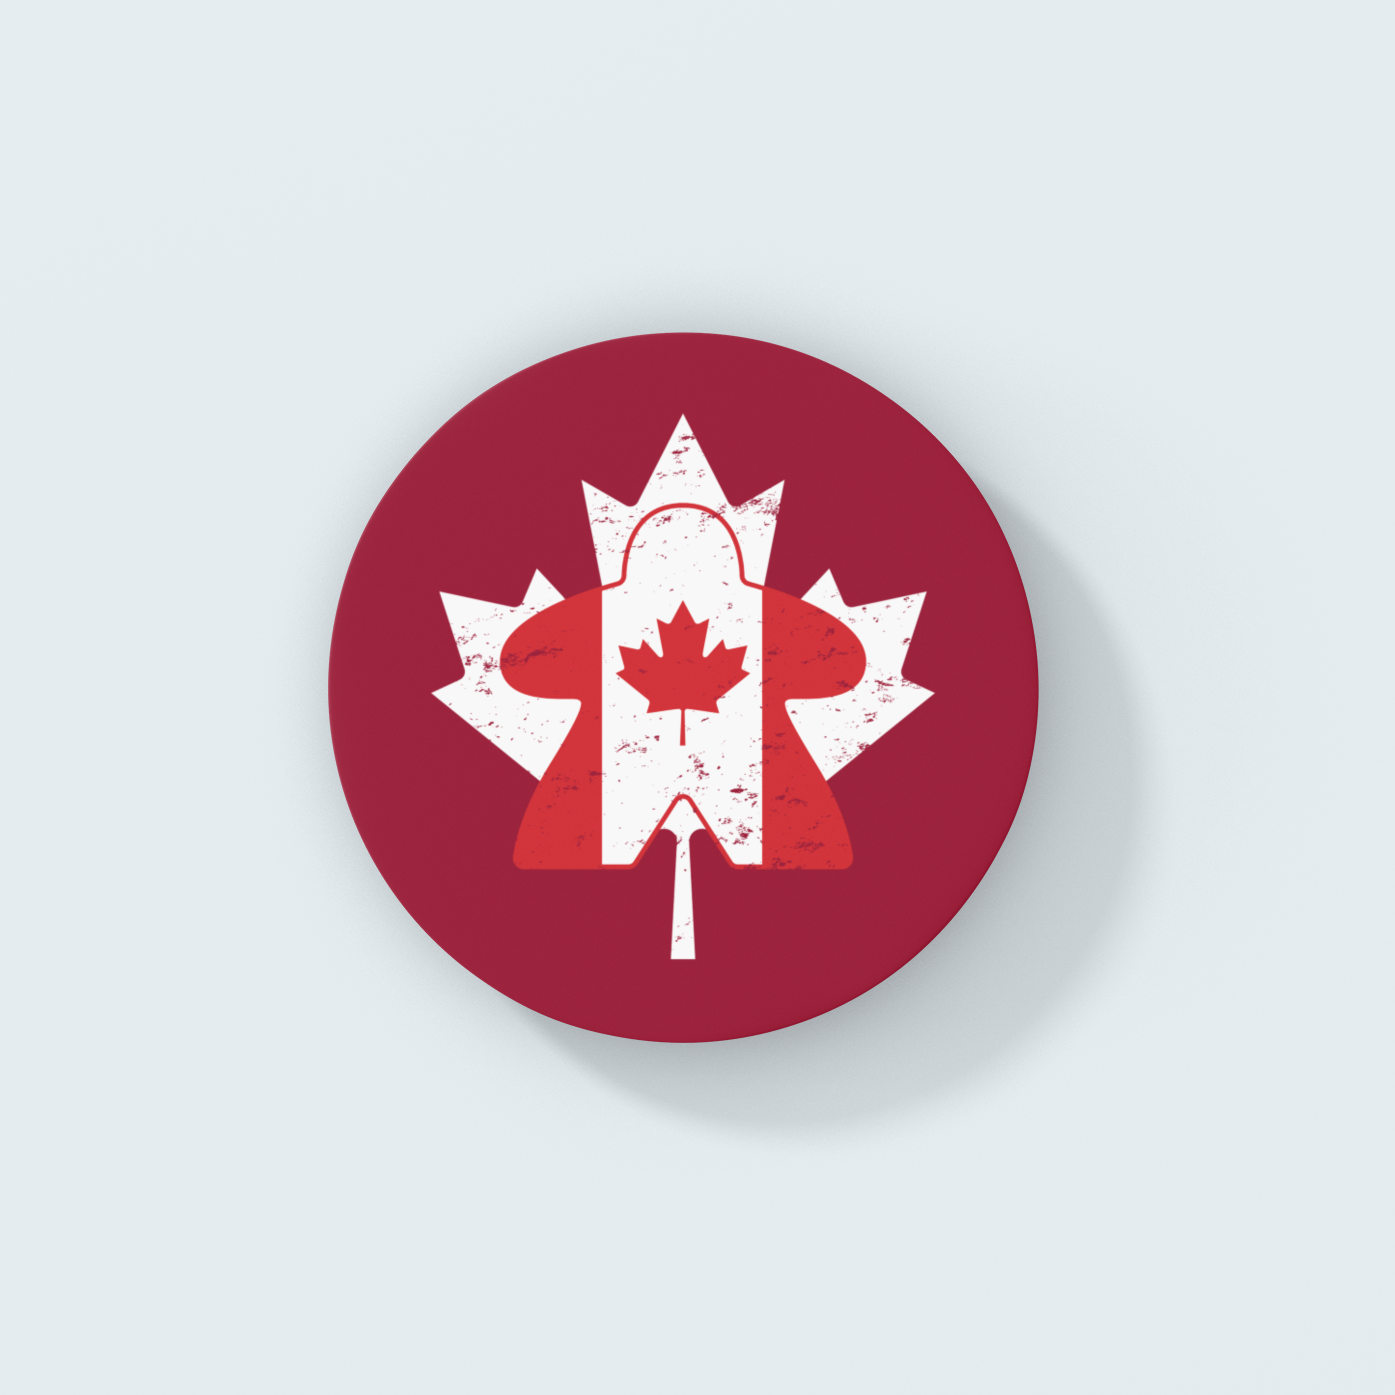 Maple Leaf Canadian Flag Meeple Board Game Coaster